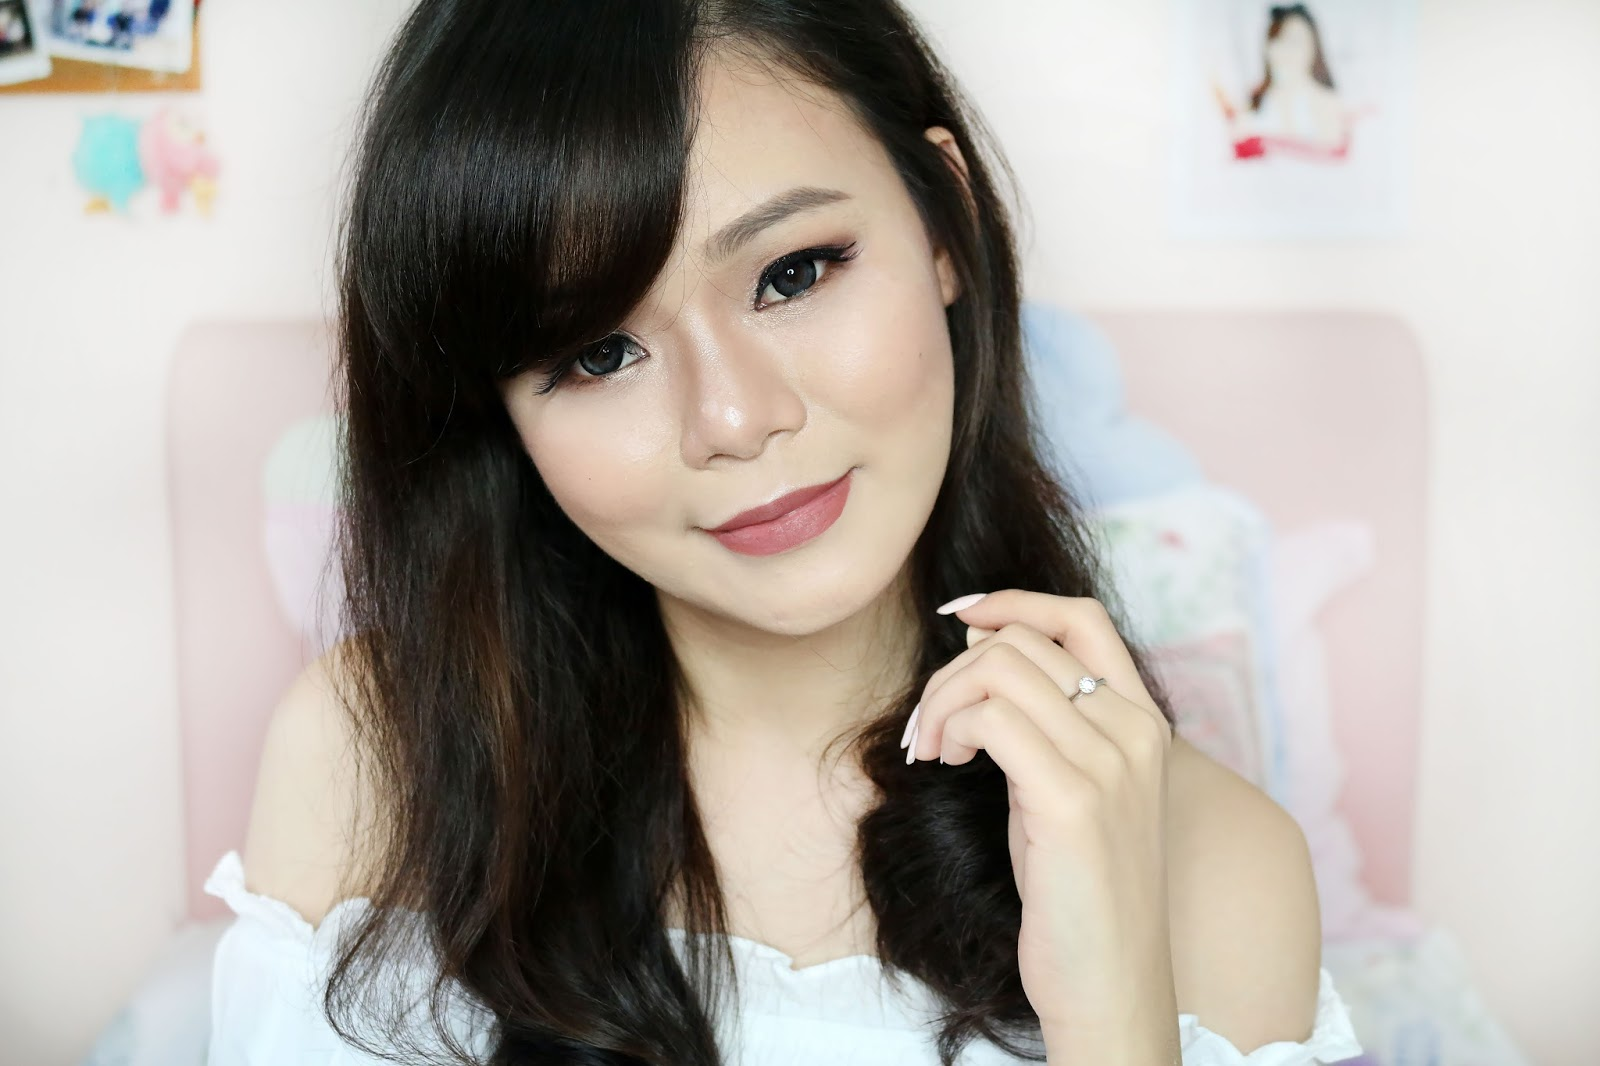 tutorial, tutorial makeup, makeup, makeup tutorial, makeup natural, my go to makeup, makeup sehari-hari, everyday makeup, korean makeup, korean style makeup, makeup untuk asia, makeup untuk indonesia